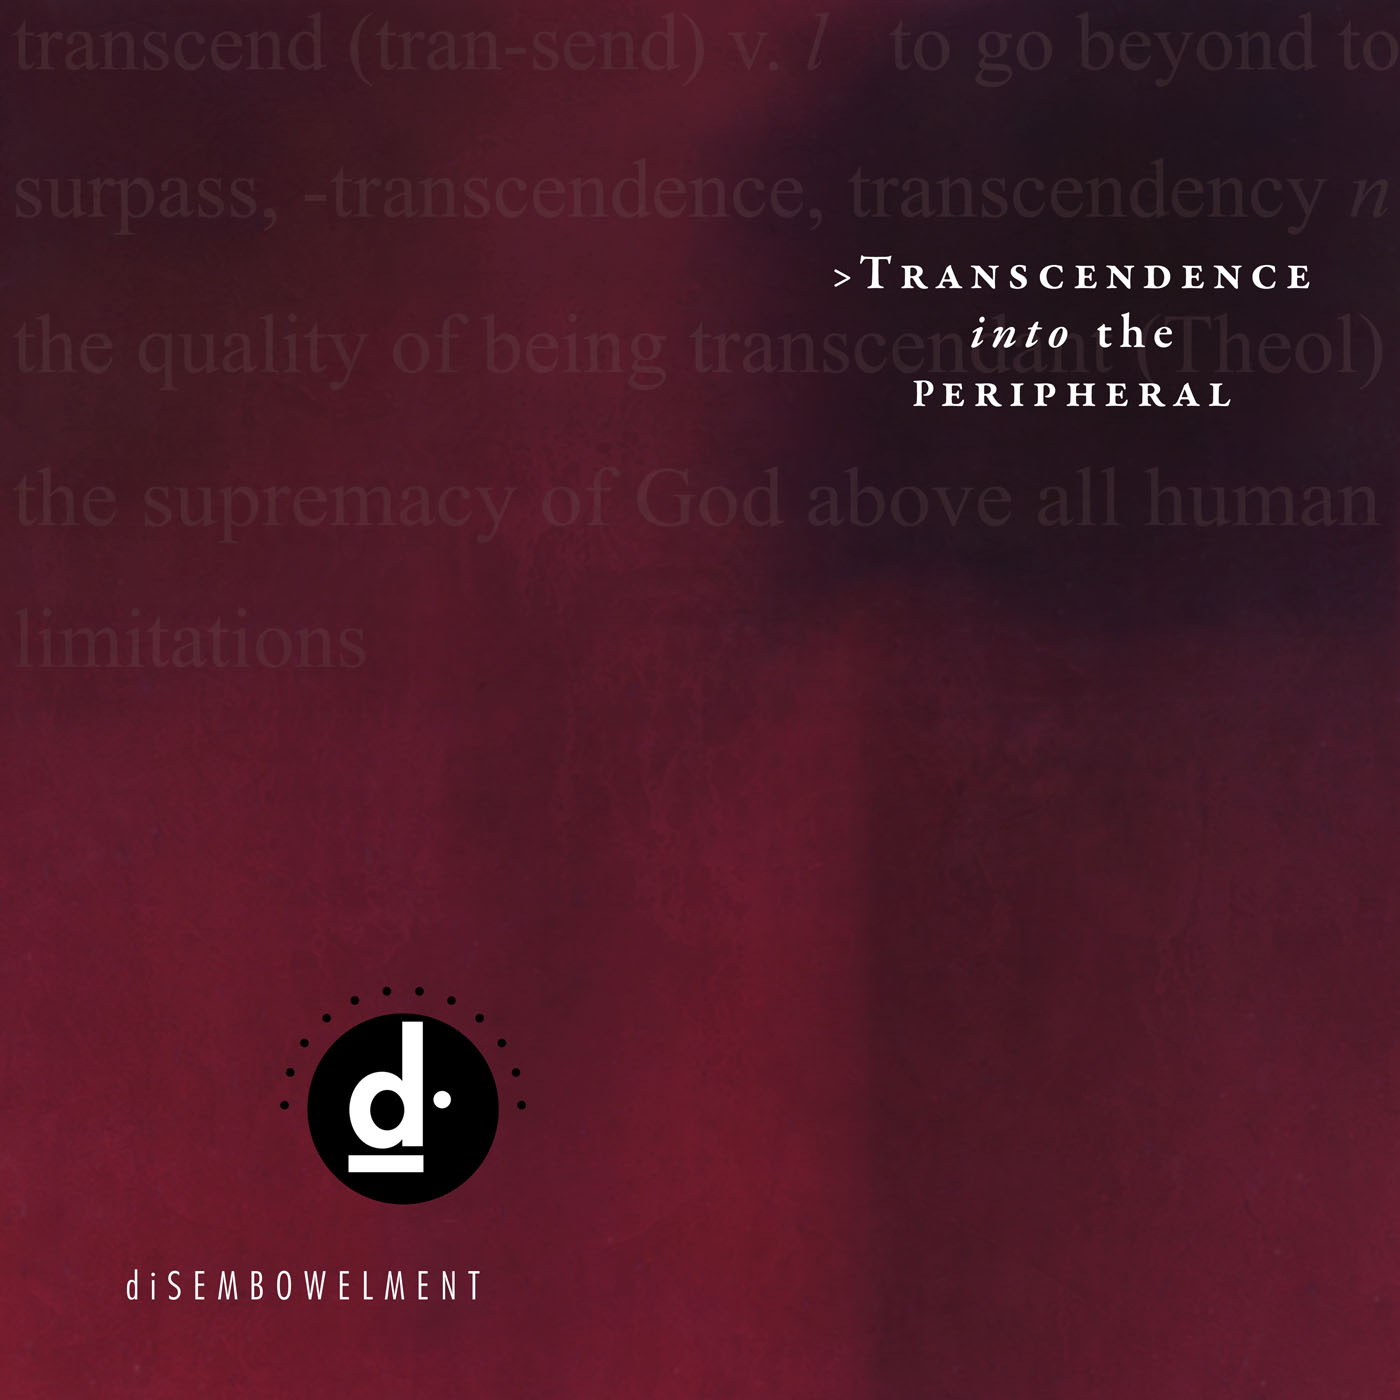 Transcendence into the Peripheral